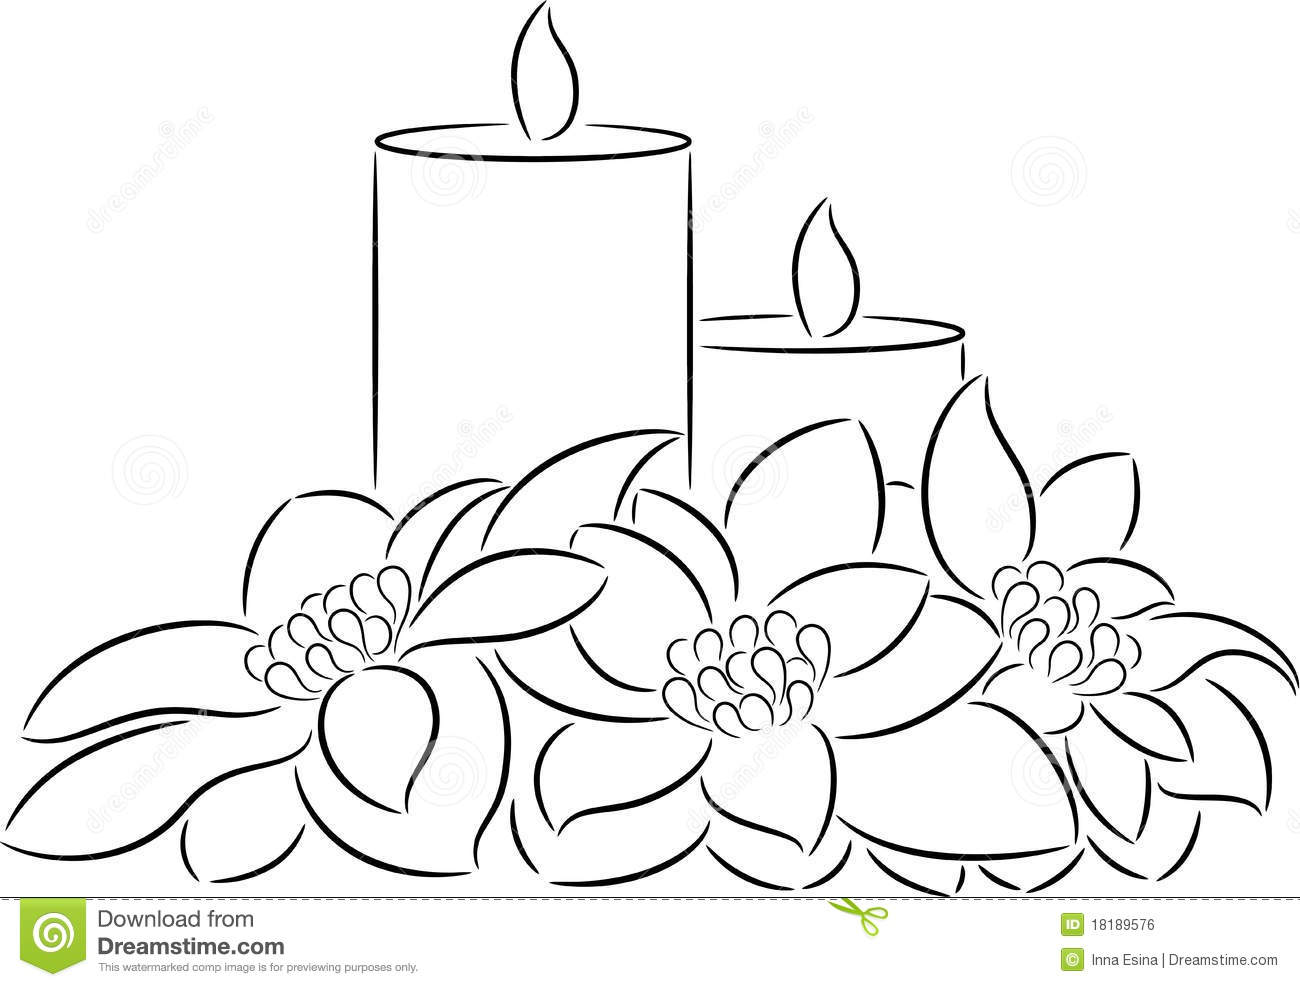 Candle And Poinsettia Royalty Free Stock Image - Image